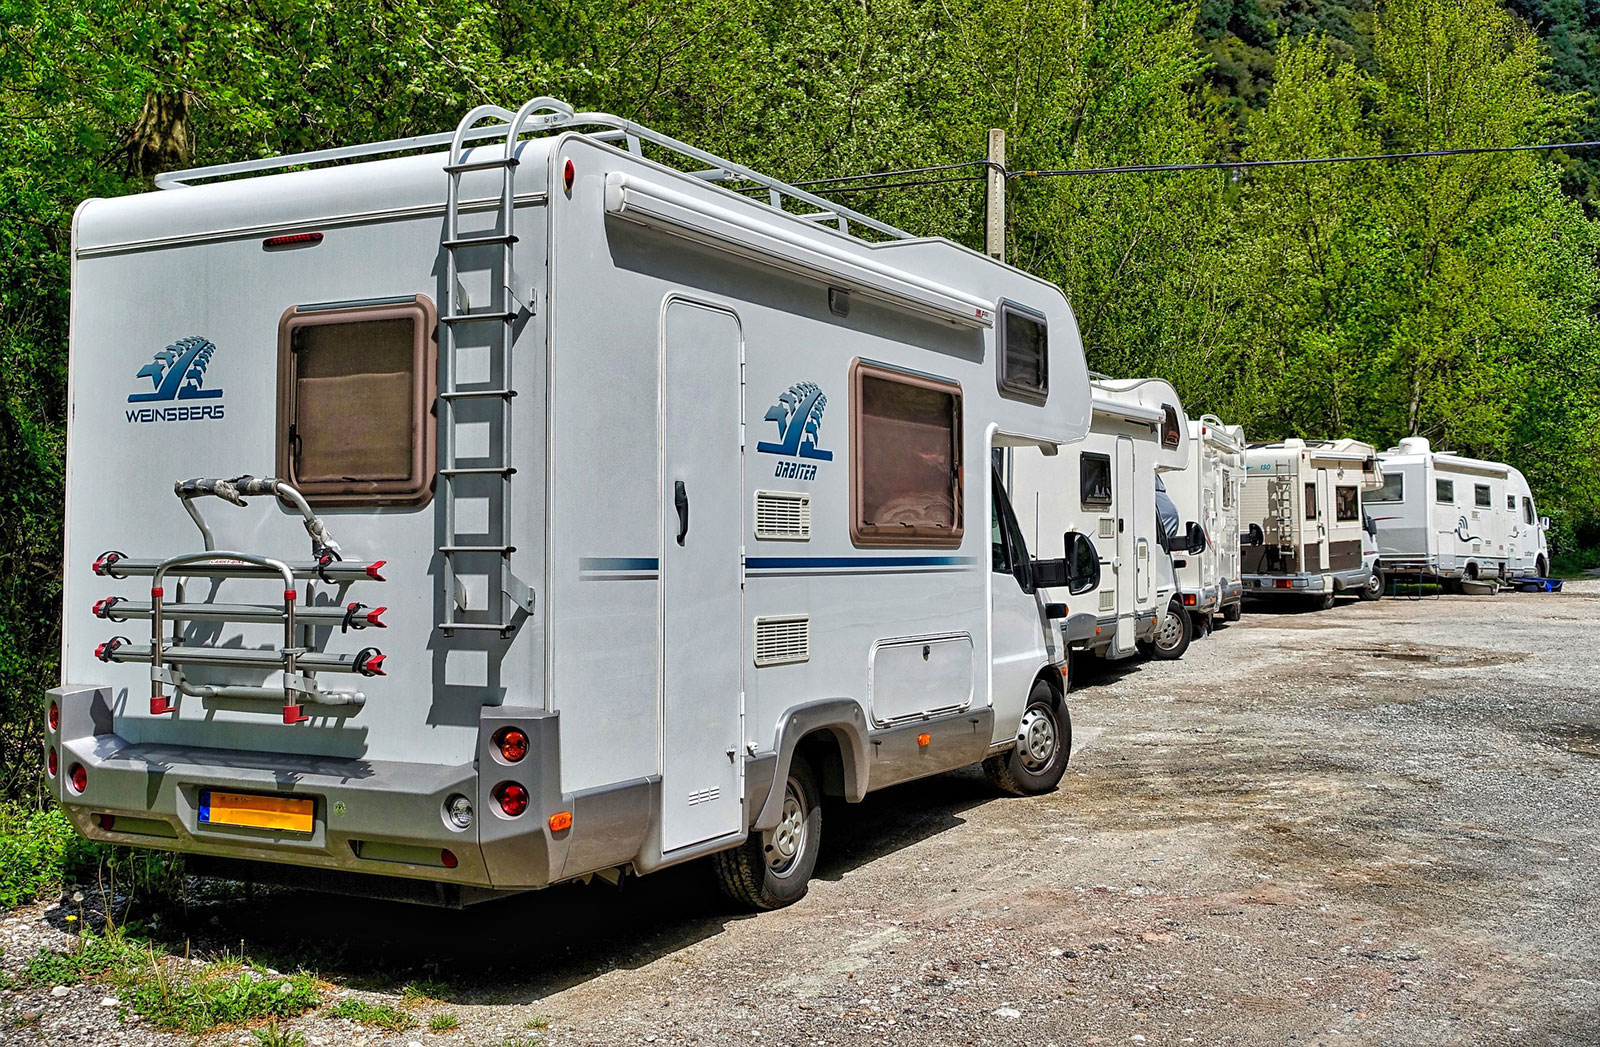 Andrieux camping car